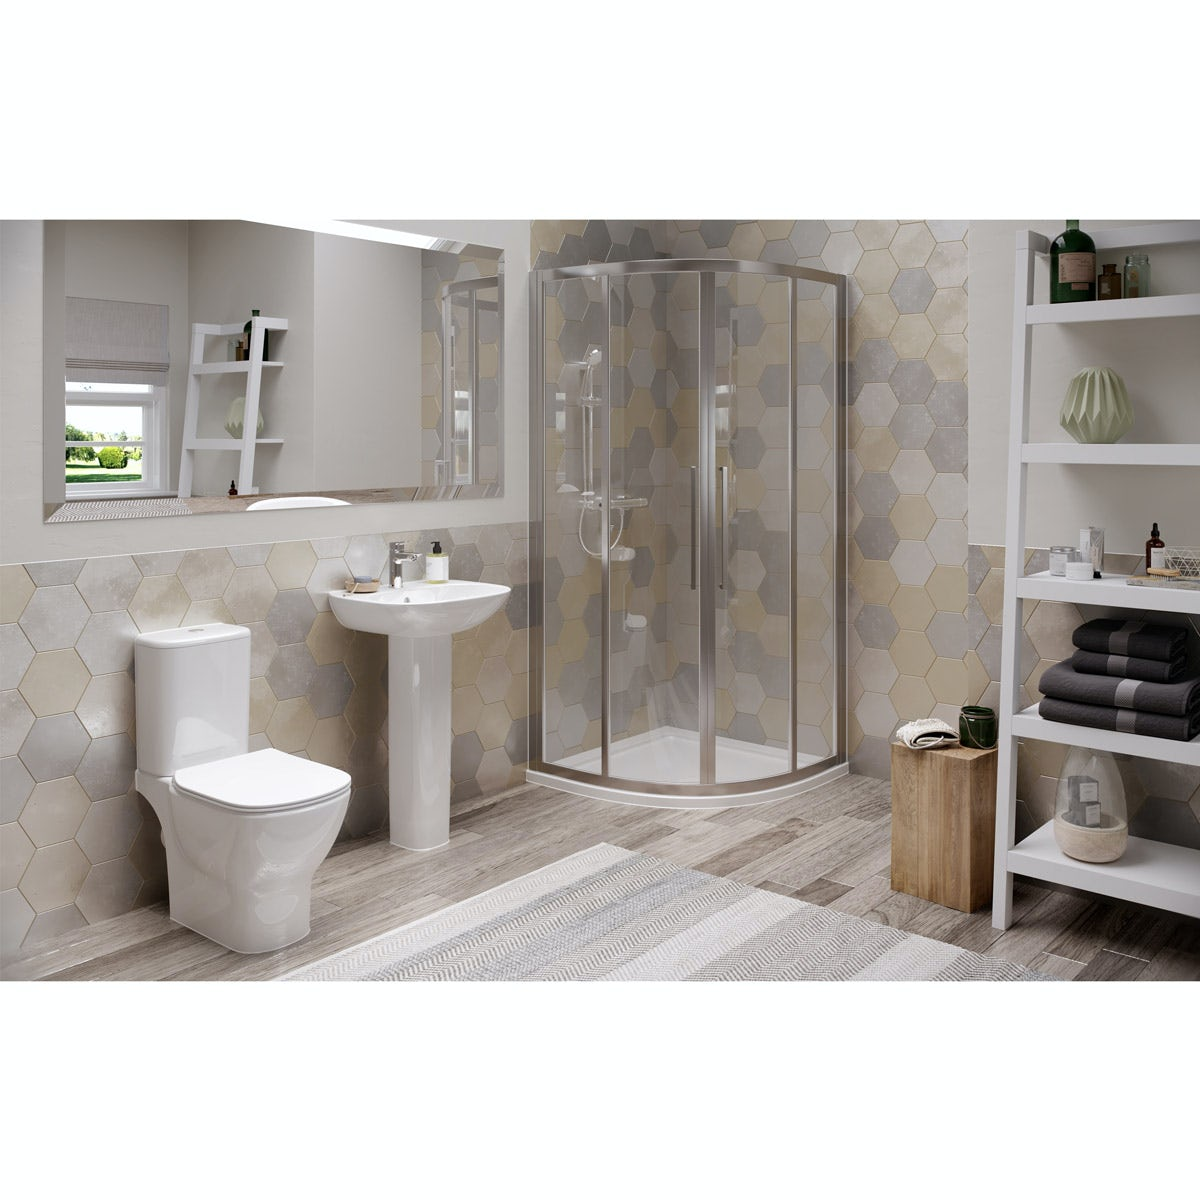 Ideal Standard Tesi complete shower ensuite suite with quadrant enclosure, tray, shower, tap and wastes 800 x 800